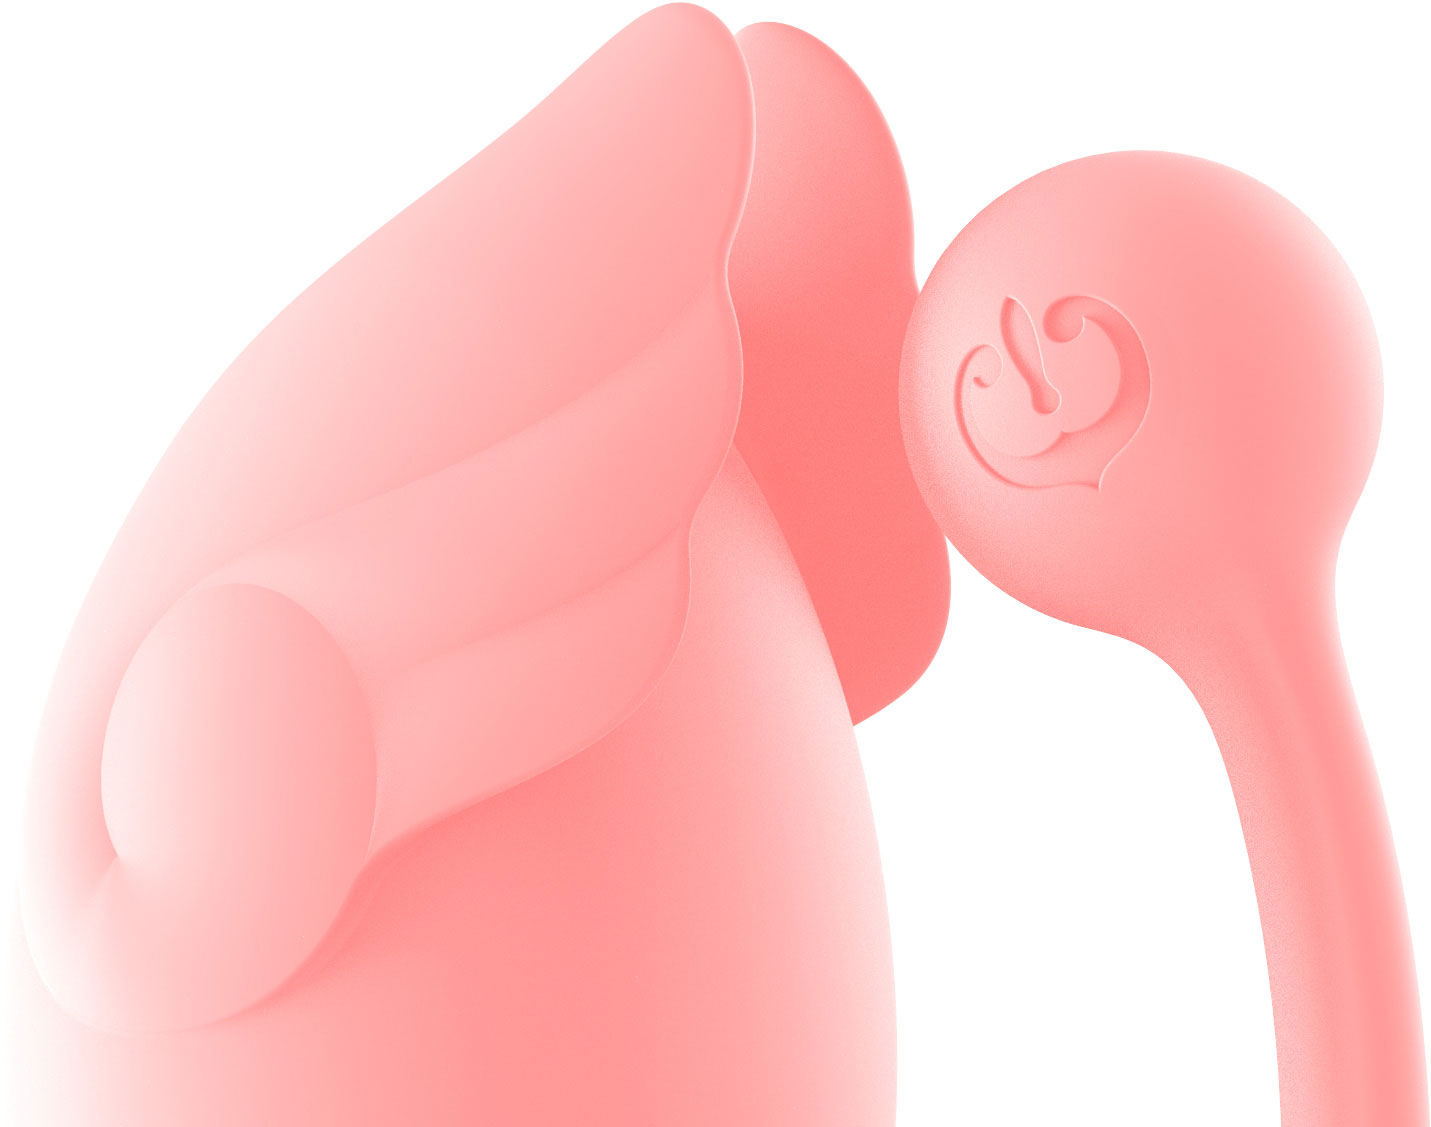 ZALO Amorette Remote-Controlled Silicone Waterproof Rechargeable Vibrating Egg - View Of The Top